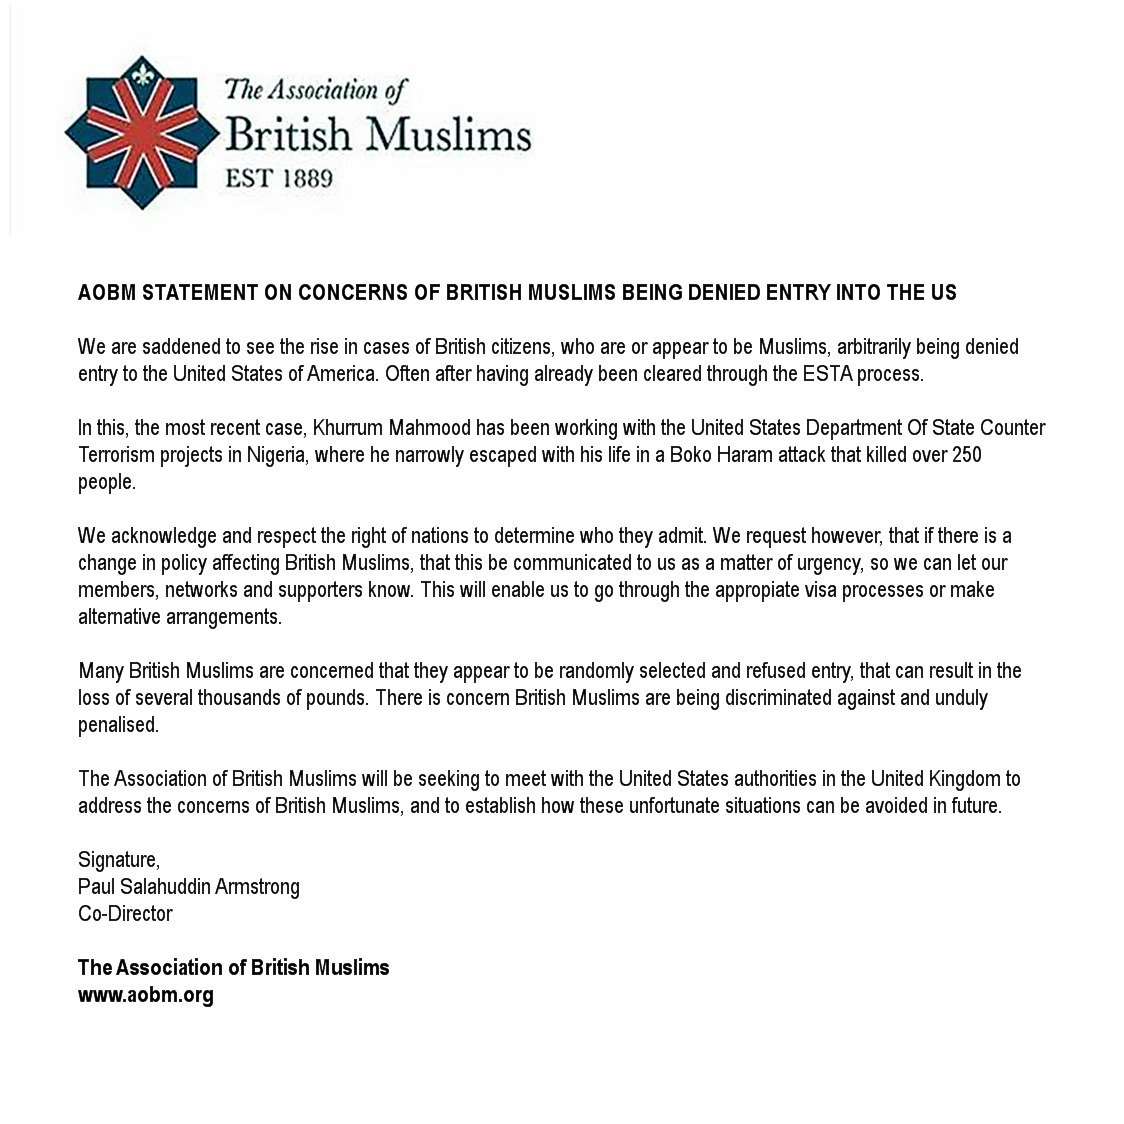 RT @aofbm: AoBM Statement on Concerns of British Muslims Being Denied Entry into the US https://t.co/AKDeo6ZDfb